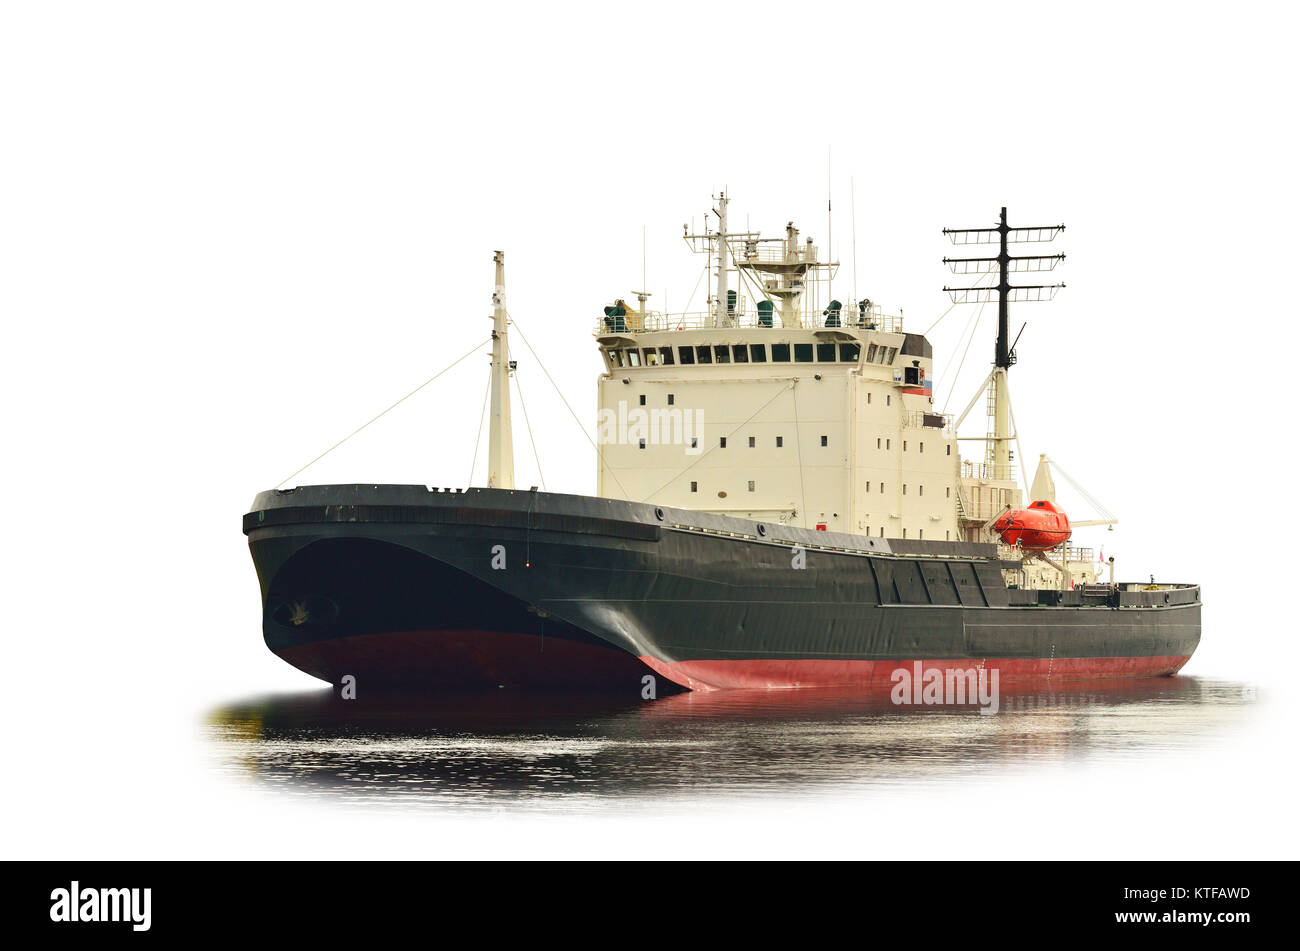 Nuclear-powered icebreaker is sea transport for cleavage of ice. - Stock Image